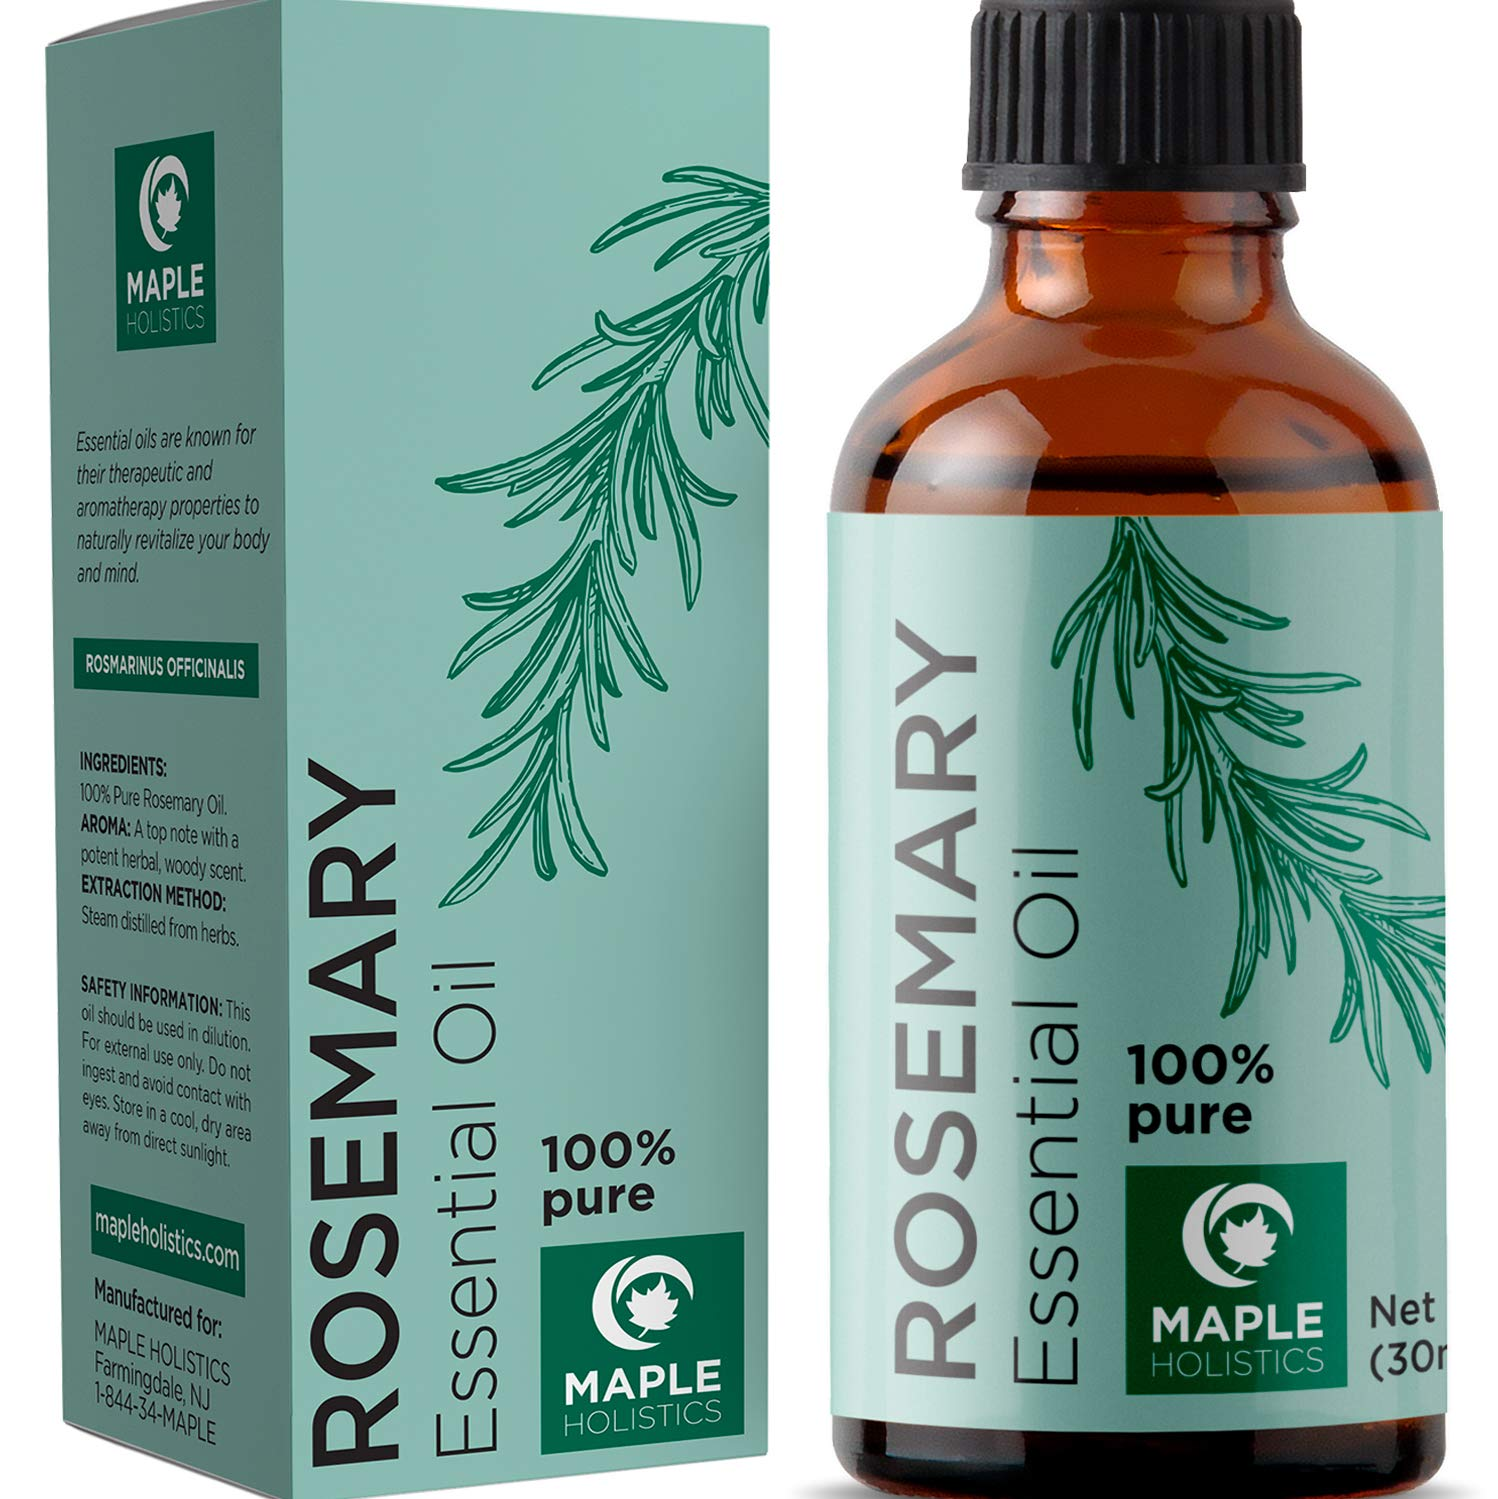 rosemary oil, essential oils, hair growth products for men, how to make your hair thicker